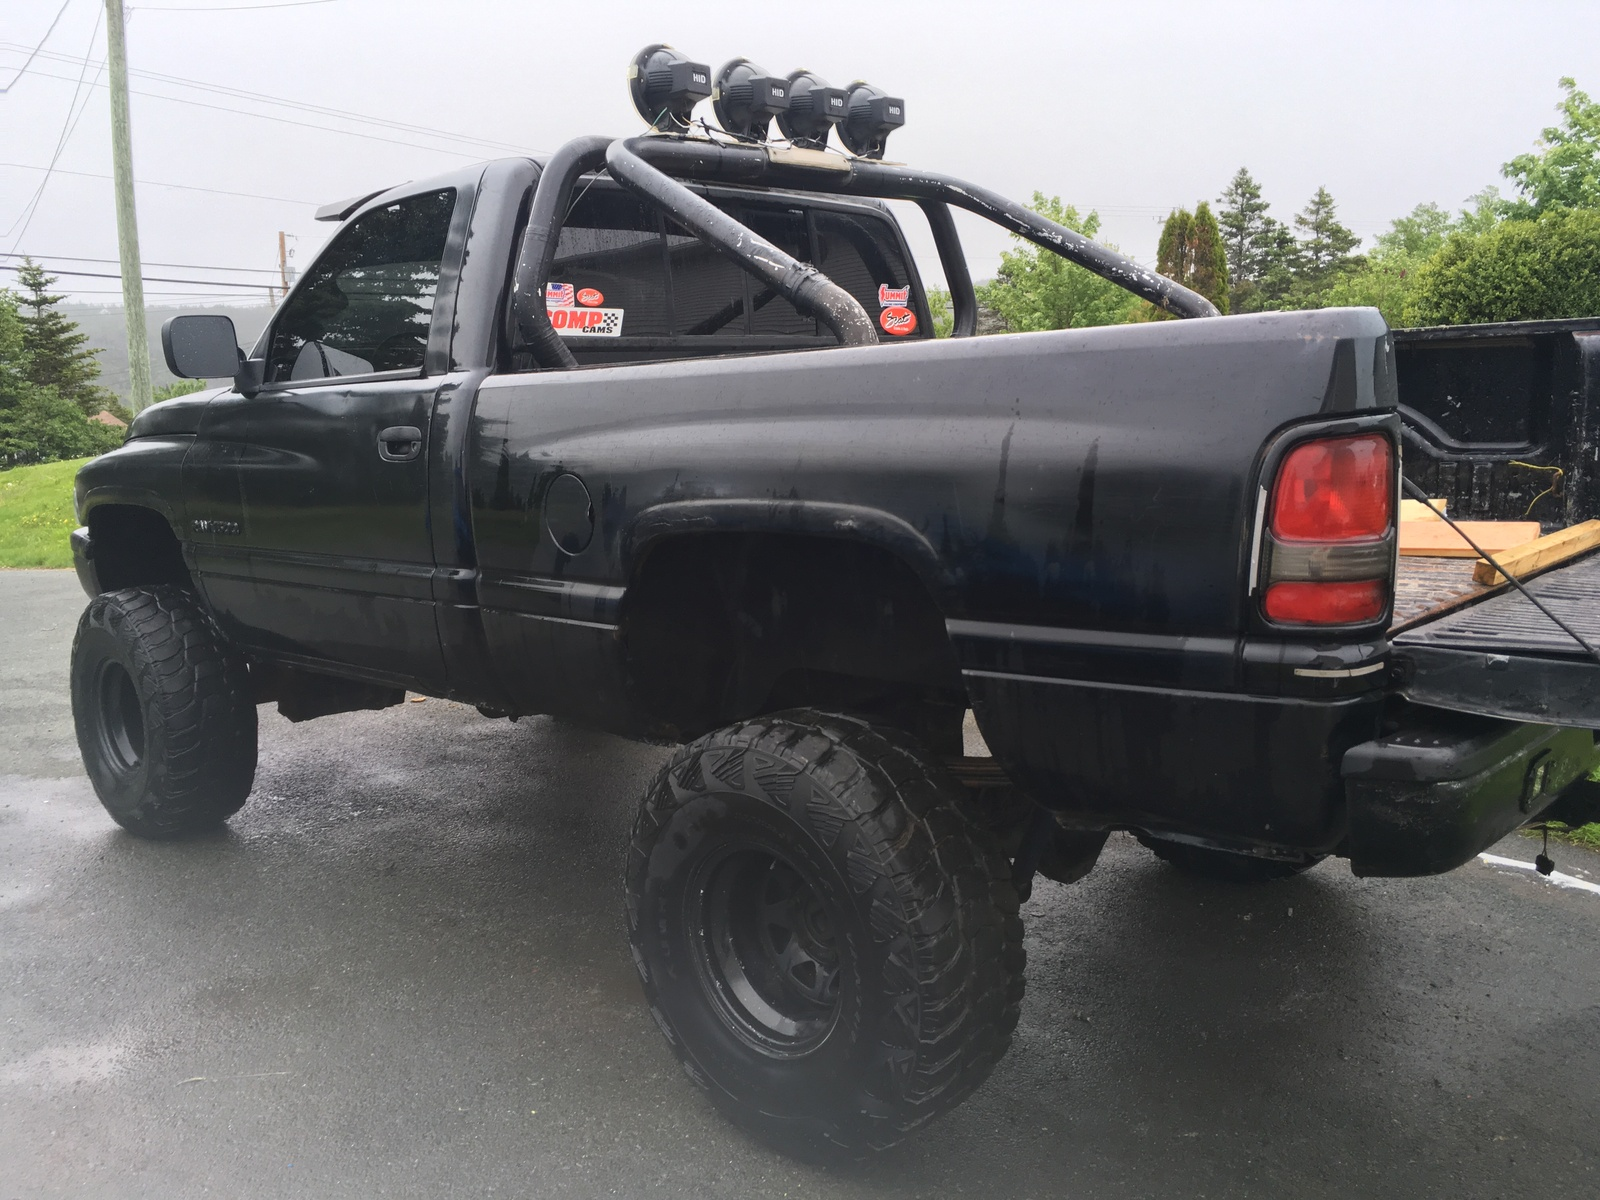 Dodge Ram 1500 Questions - Just about to sell my truck and now it ...